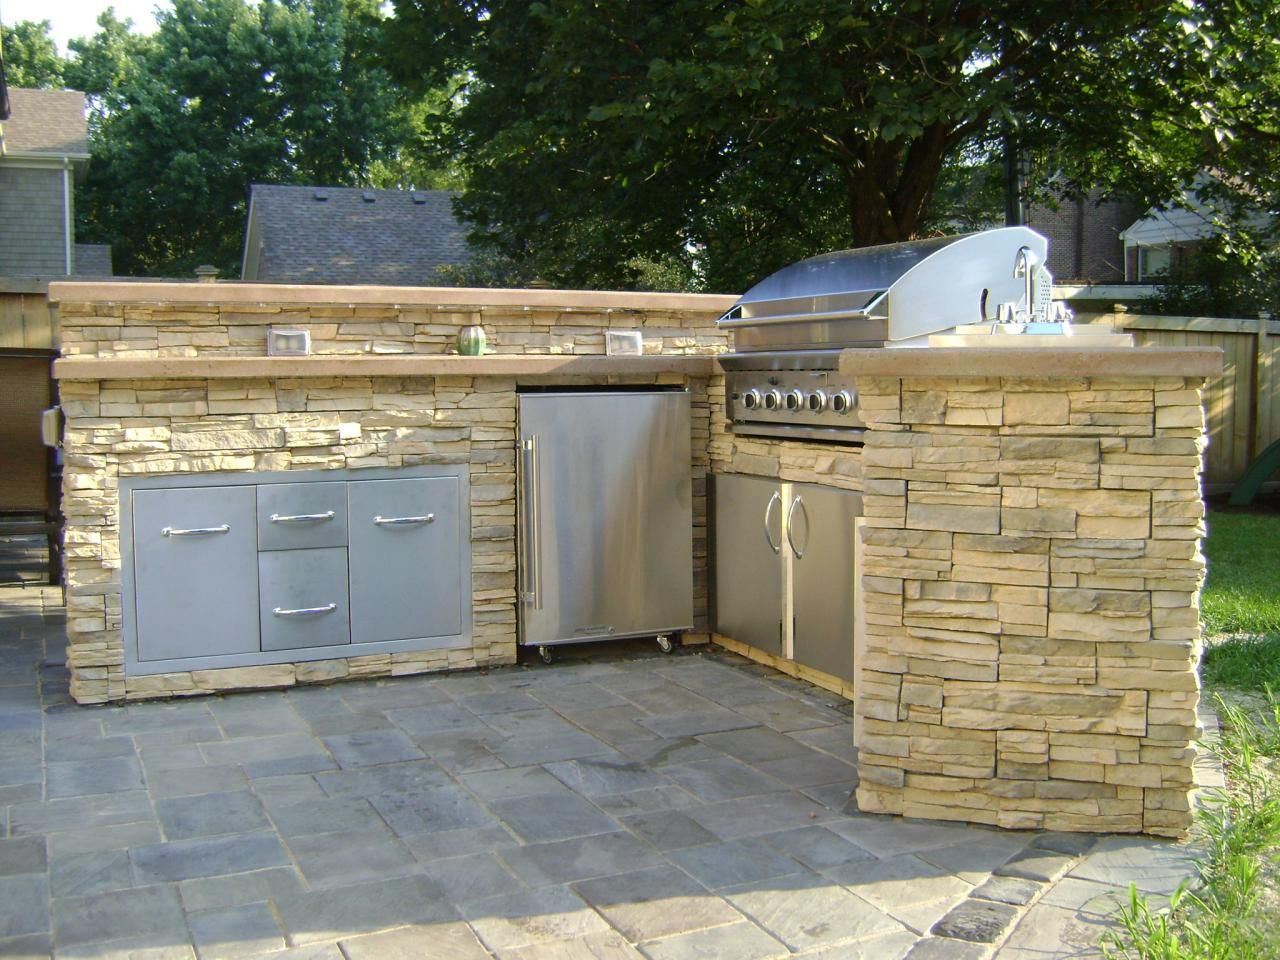 To Build Outdoor Kitchen How To Build A Bbq Grilling Station Or Grill Surround Diy And